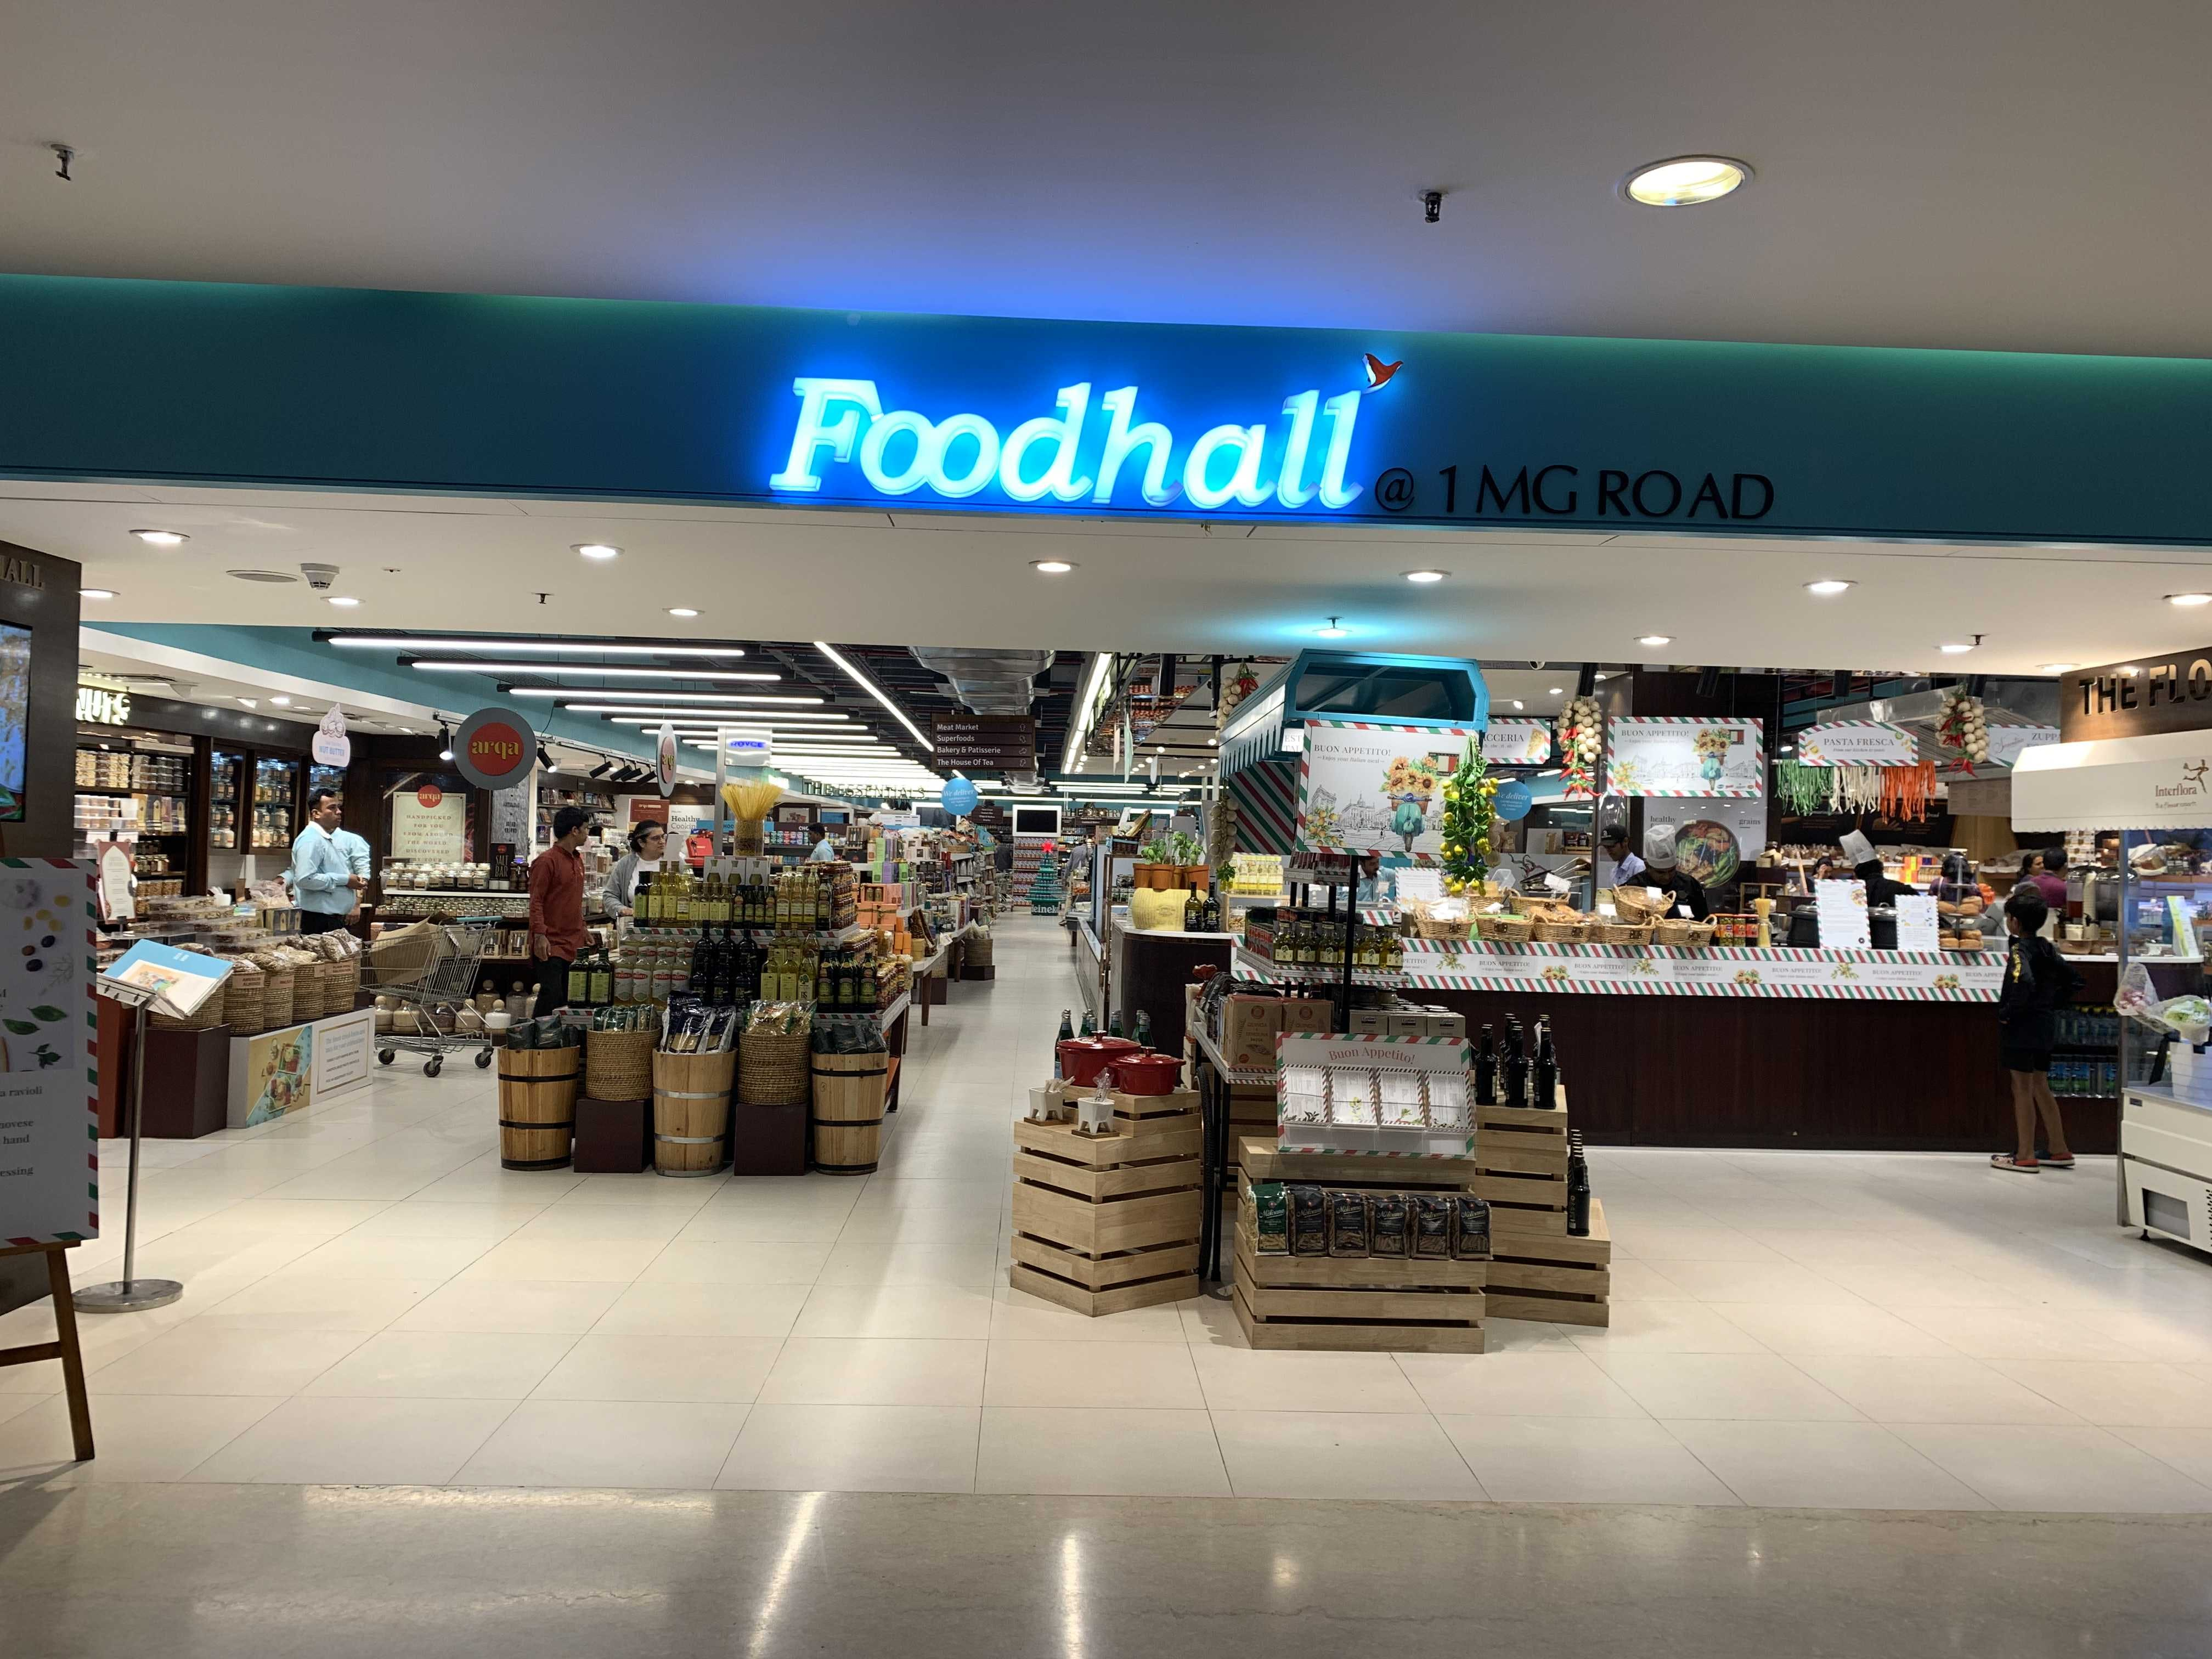 Building,Retail,Outlet store,Shopping mall,Trade,Interior design,Shopping,Convenience store,Supermarket